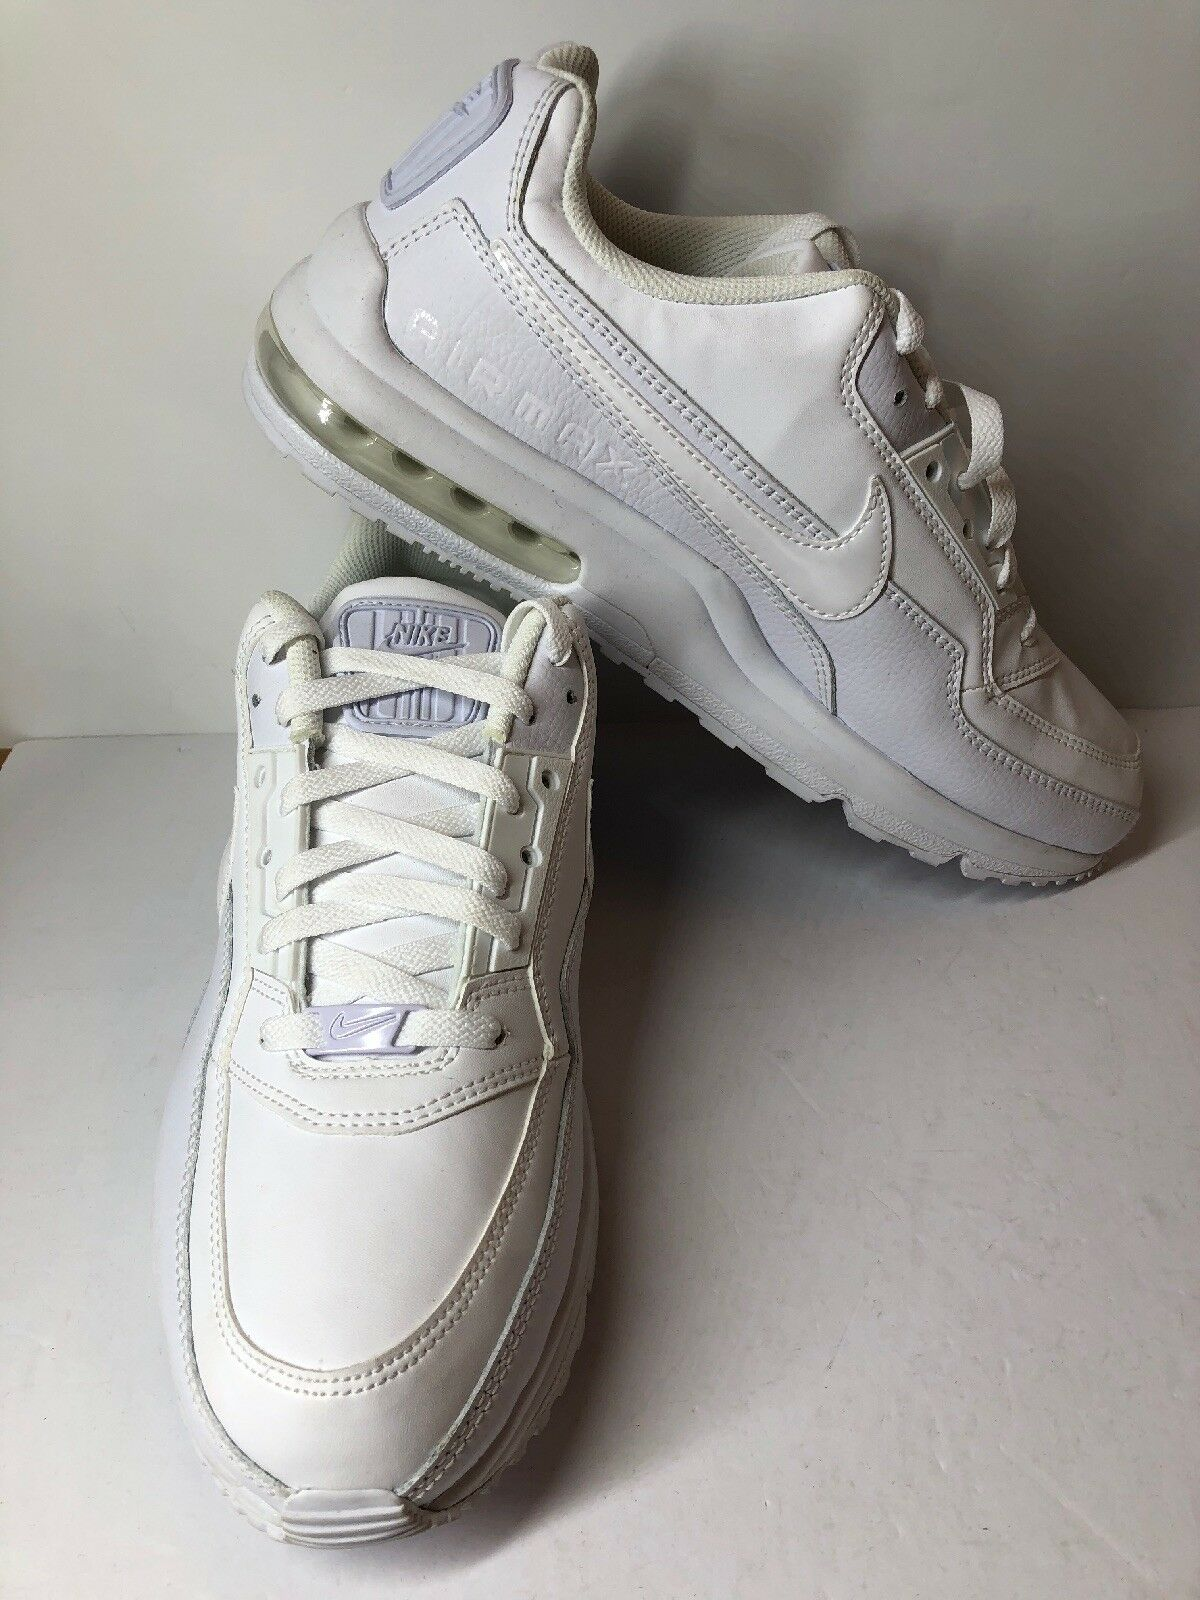 best sneakers c4d9c ee657 Nike Nike Nike LTD Full White 3 Size 11.5 For Men Brand New Without Box  687977